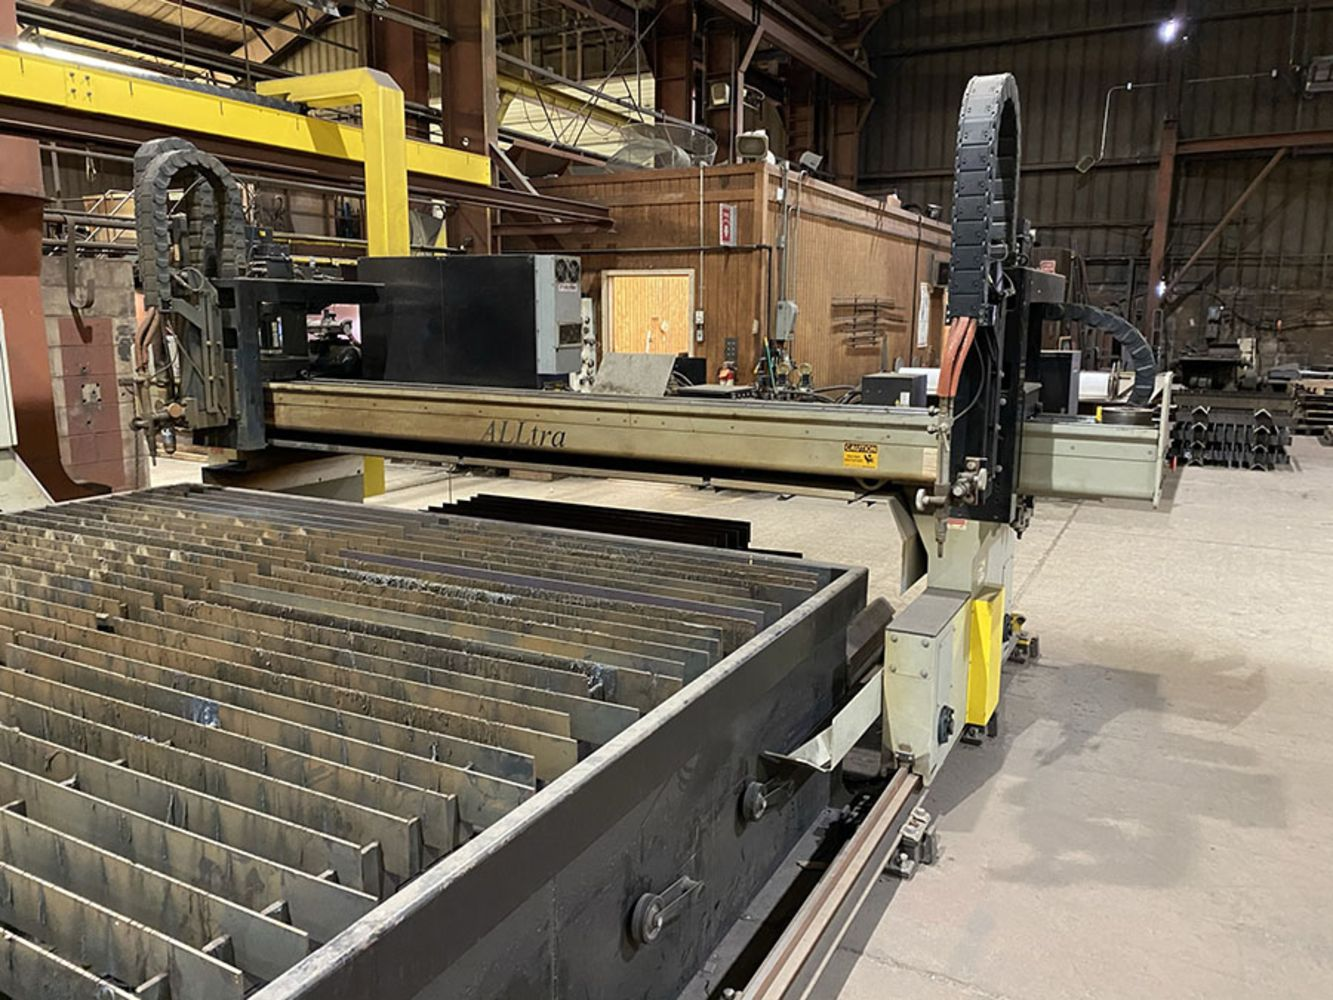 MOORHEAD MACHINERY & BOILER CO. - DAY 1 OF 2 - Heavy Steel Fabricating & Boiler Manufacturing